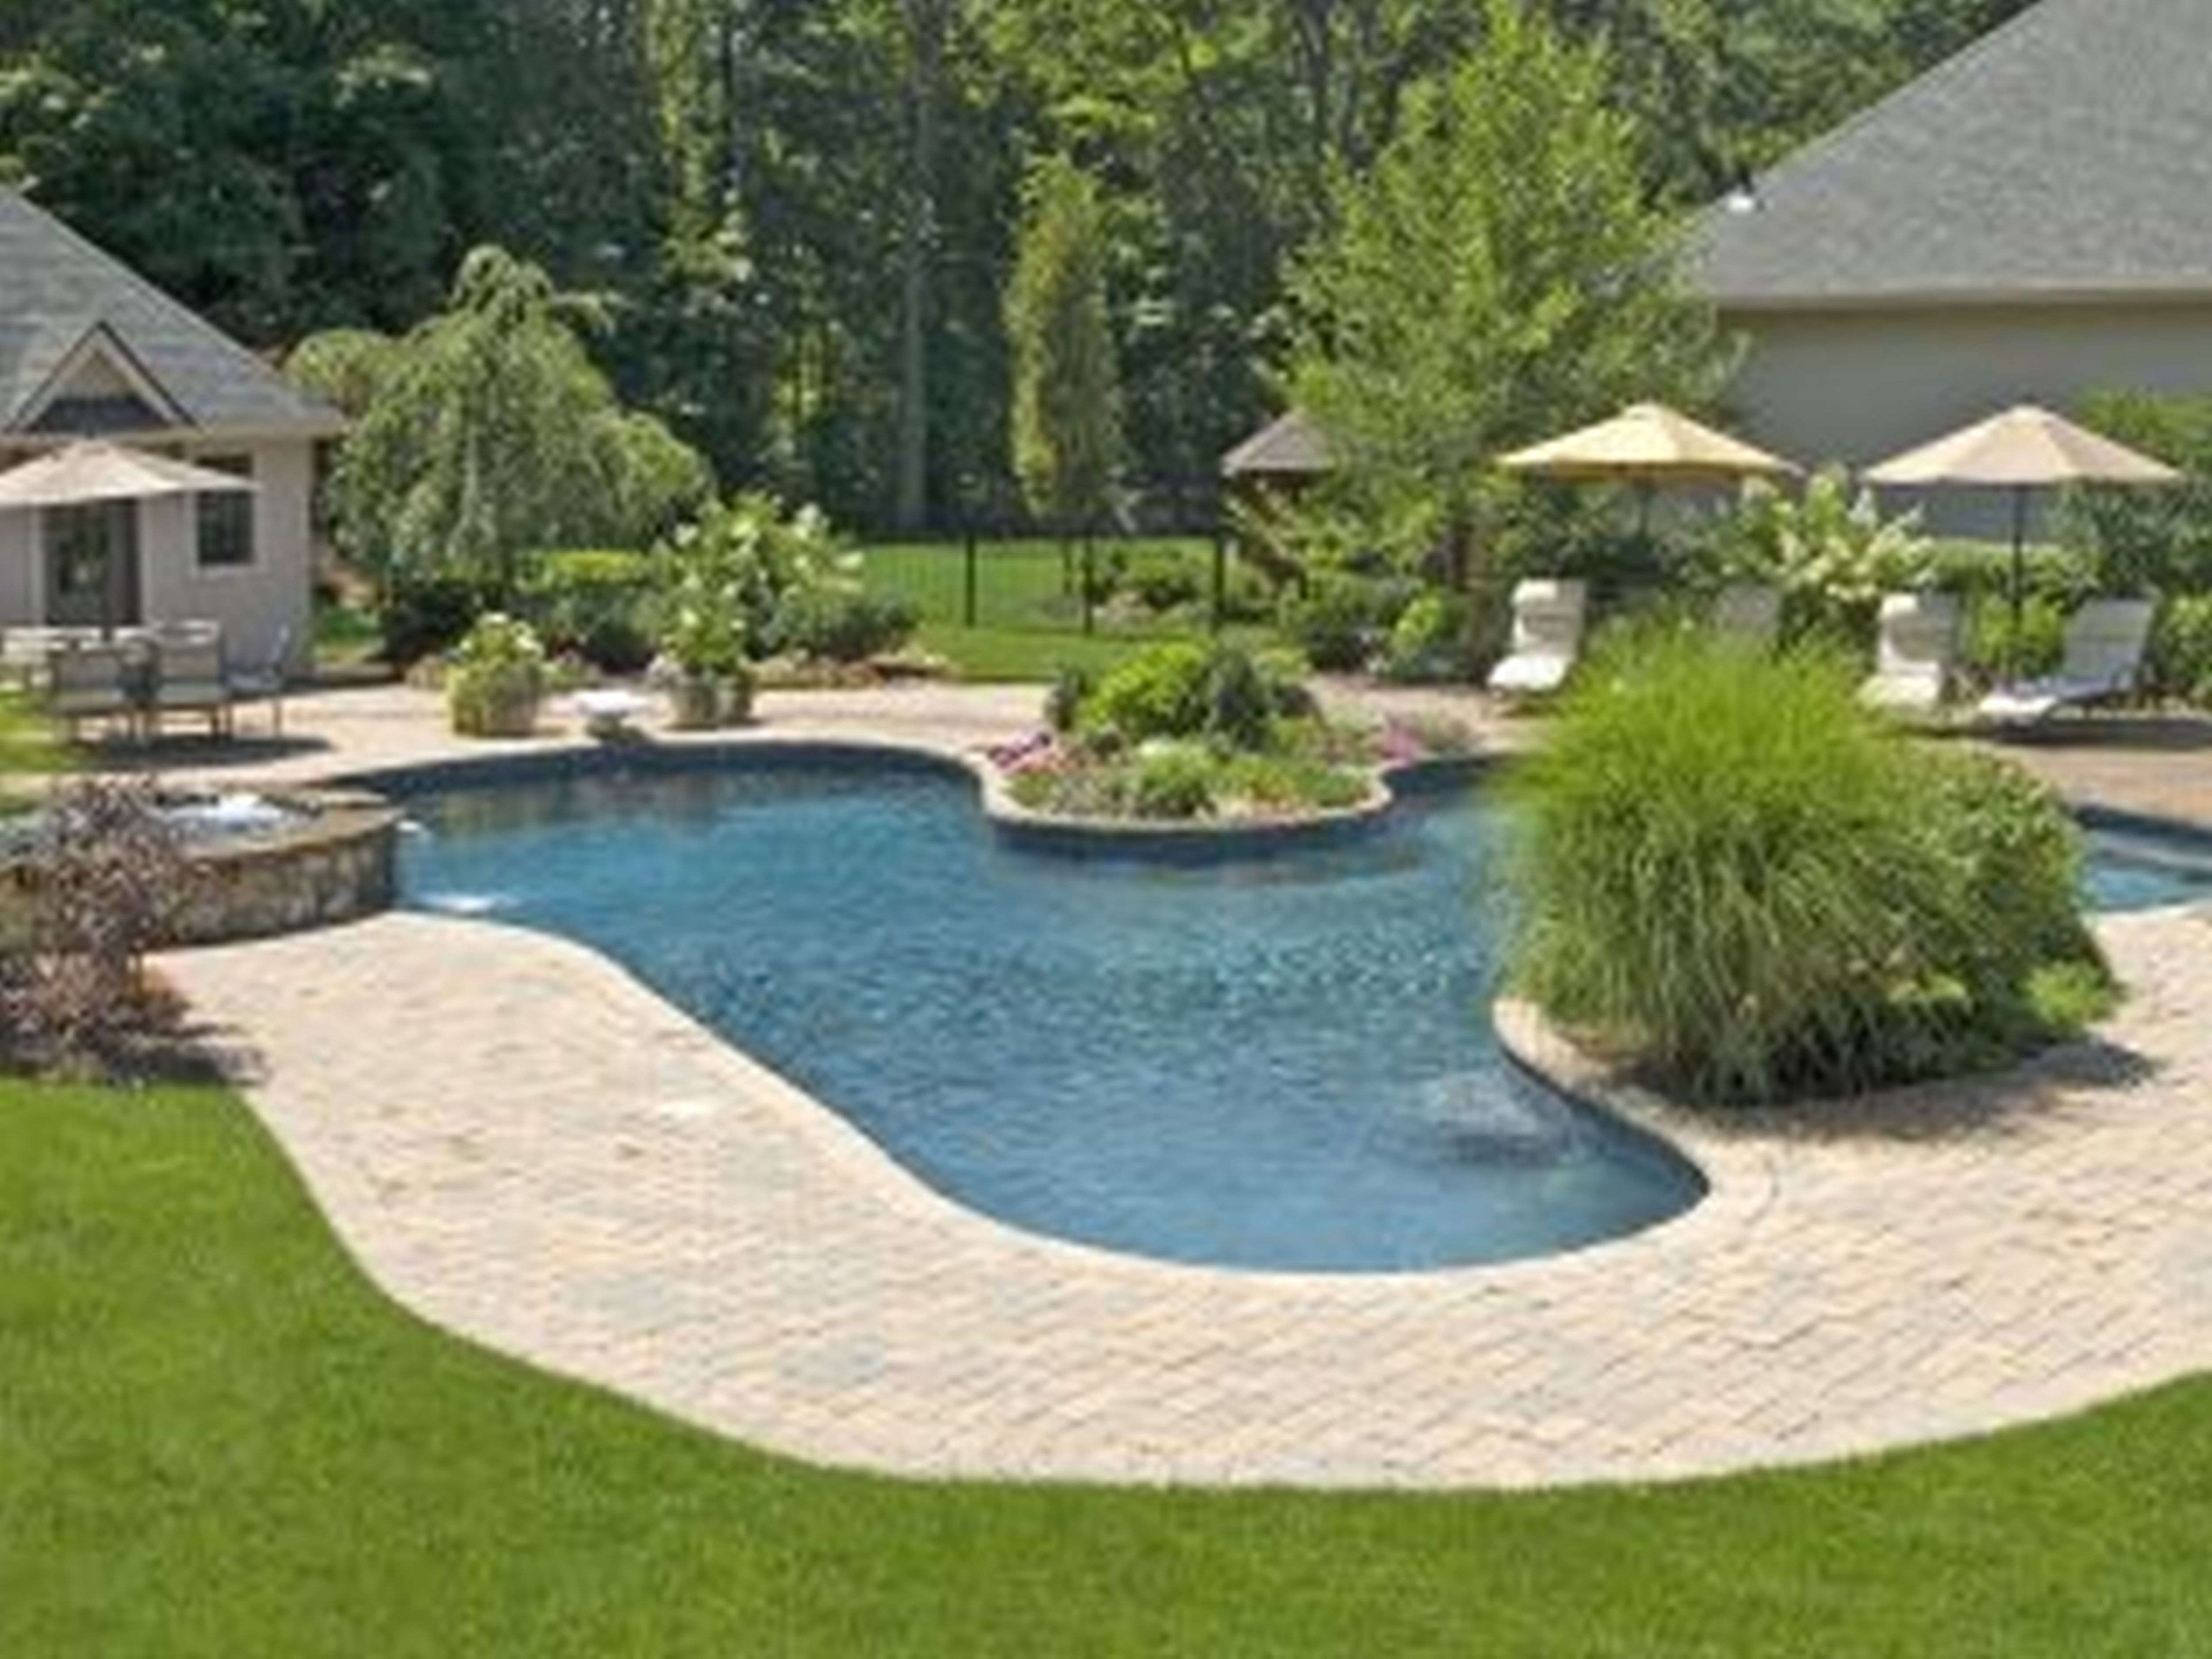 Pool Small Pool Design Ideas Backyard Landscapes Pool Design ...